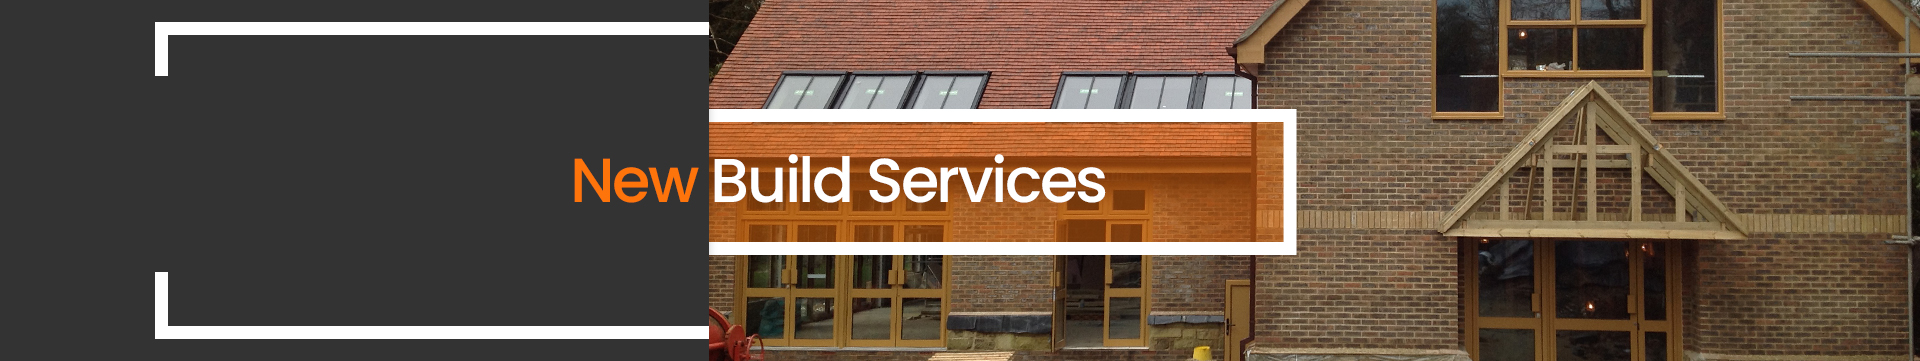 New build services banner image